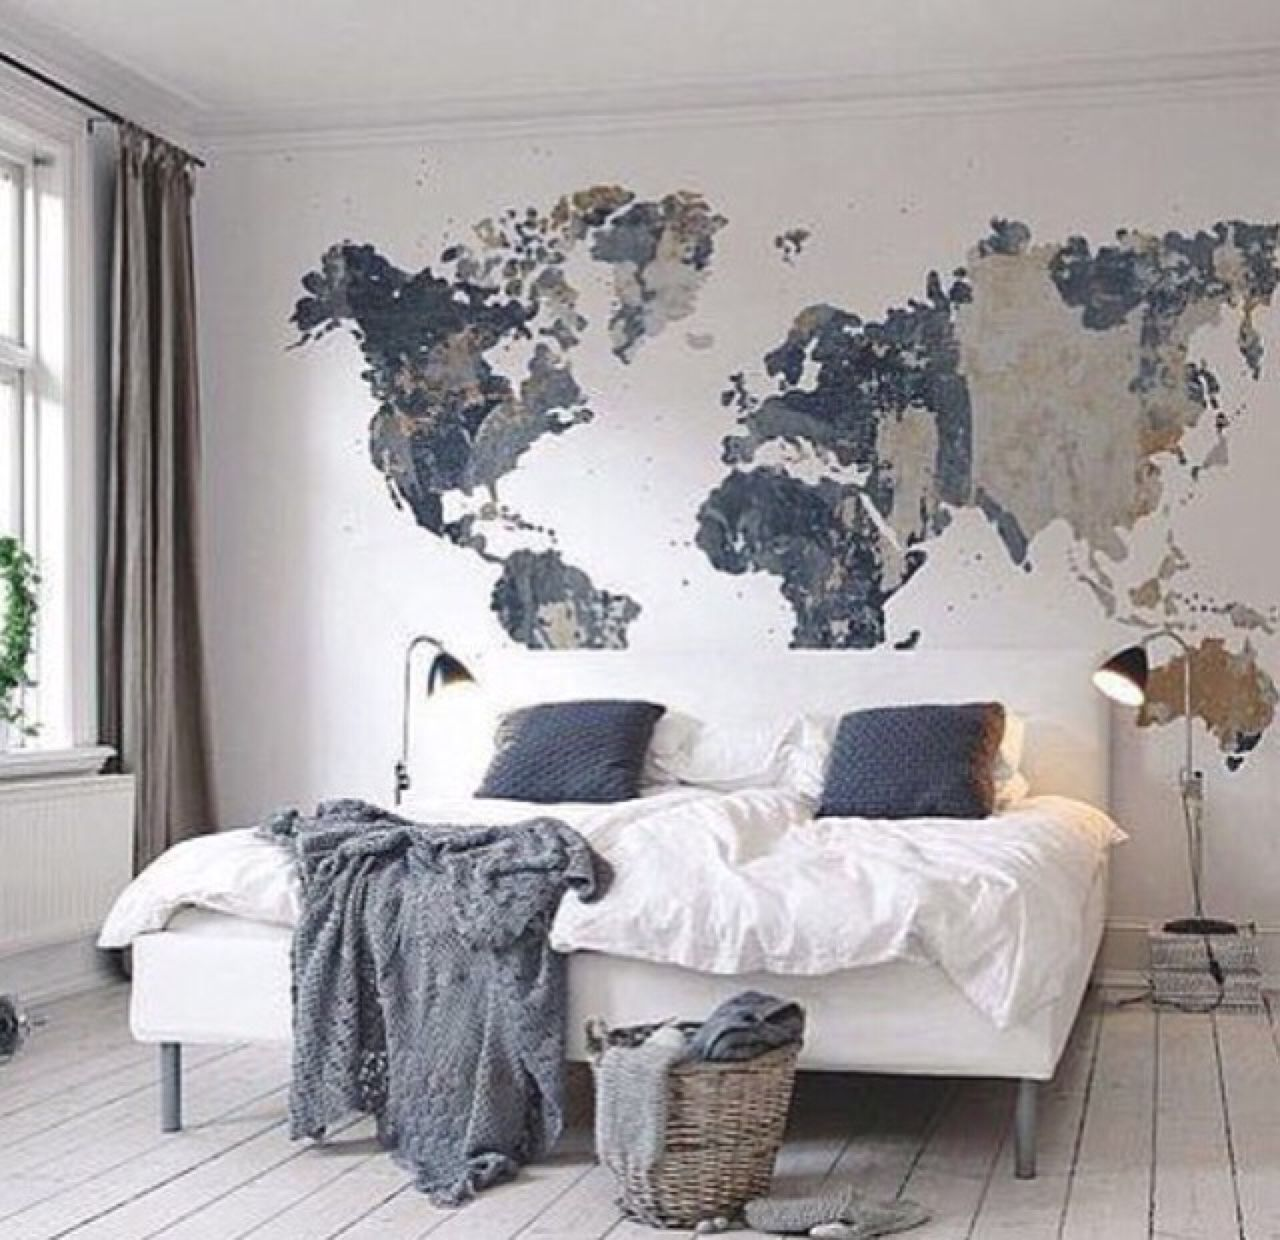 Wall decor for teen bedroom greyblue scale map with glow in the dark pins and outline  bedroom